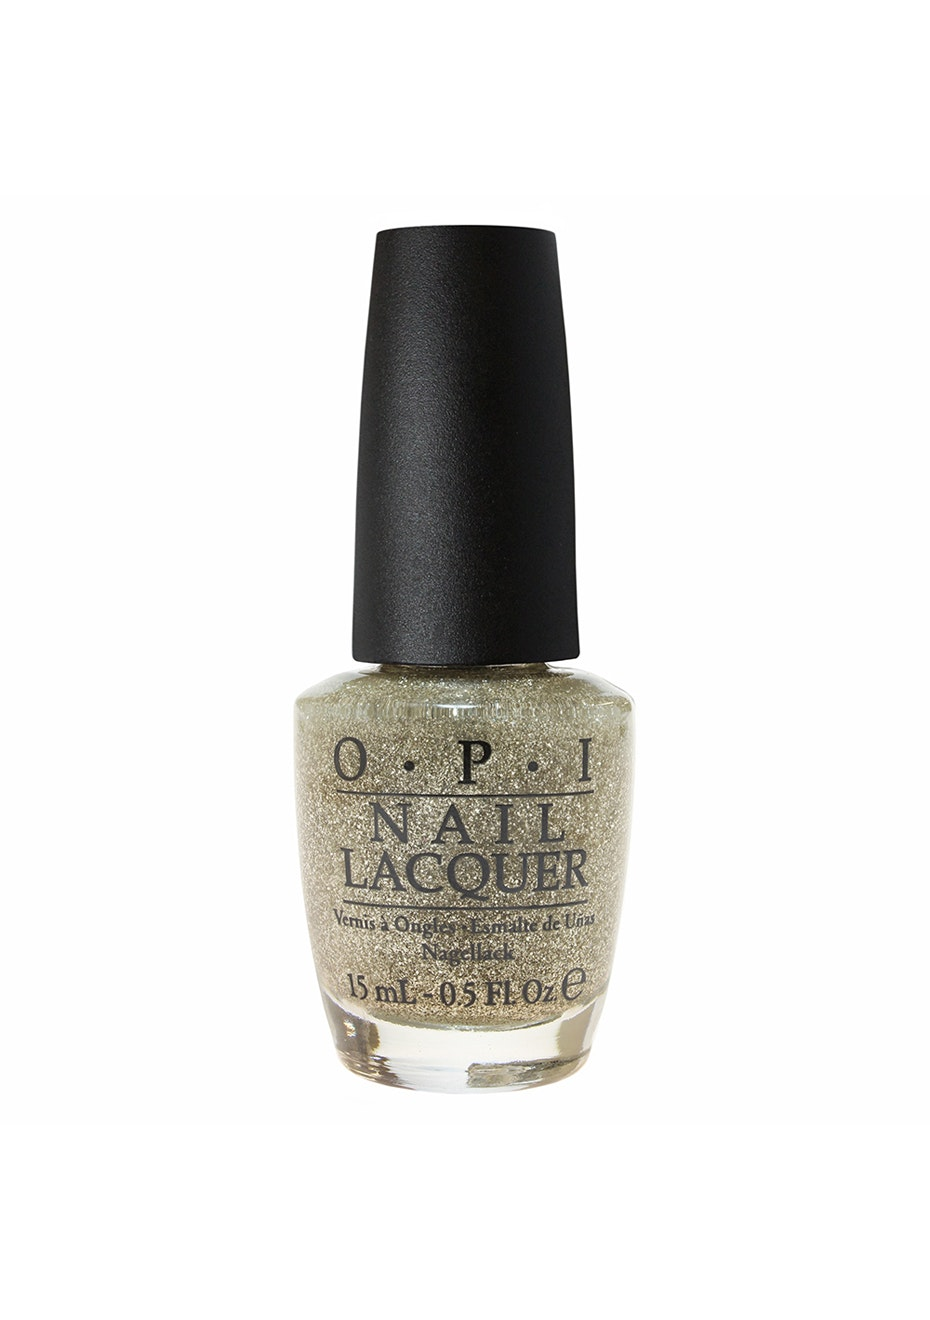 OPI-#HLE05 My Favourite Ornament